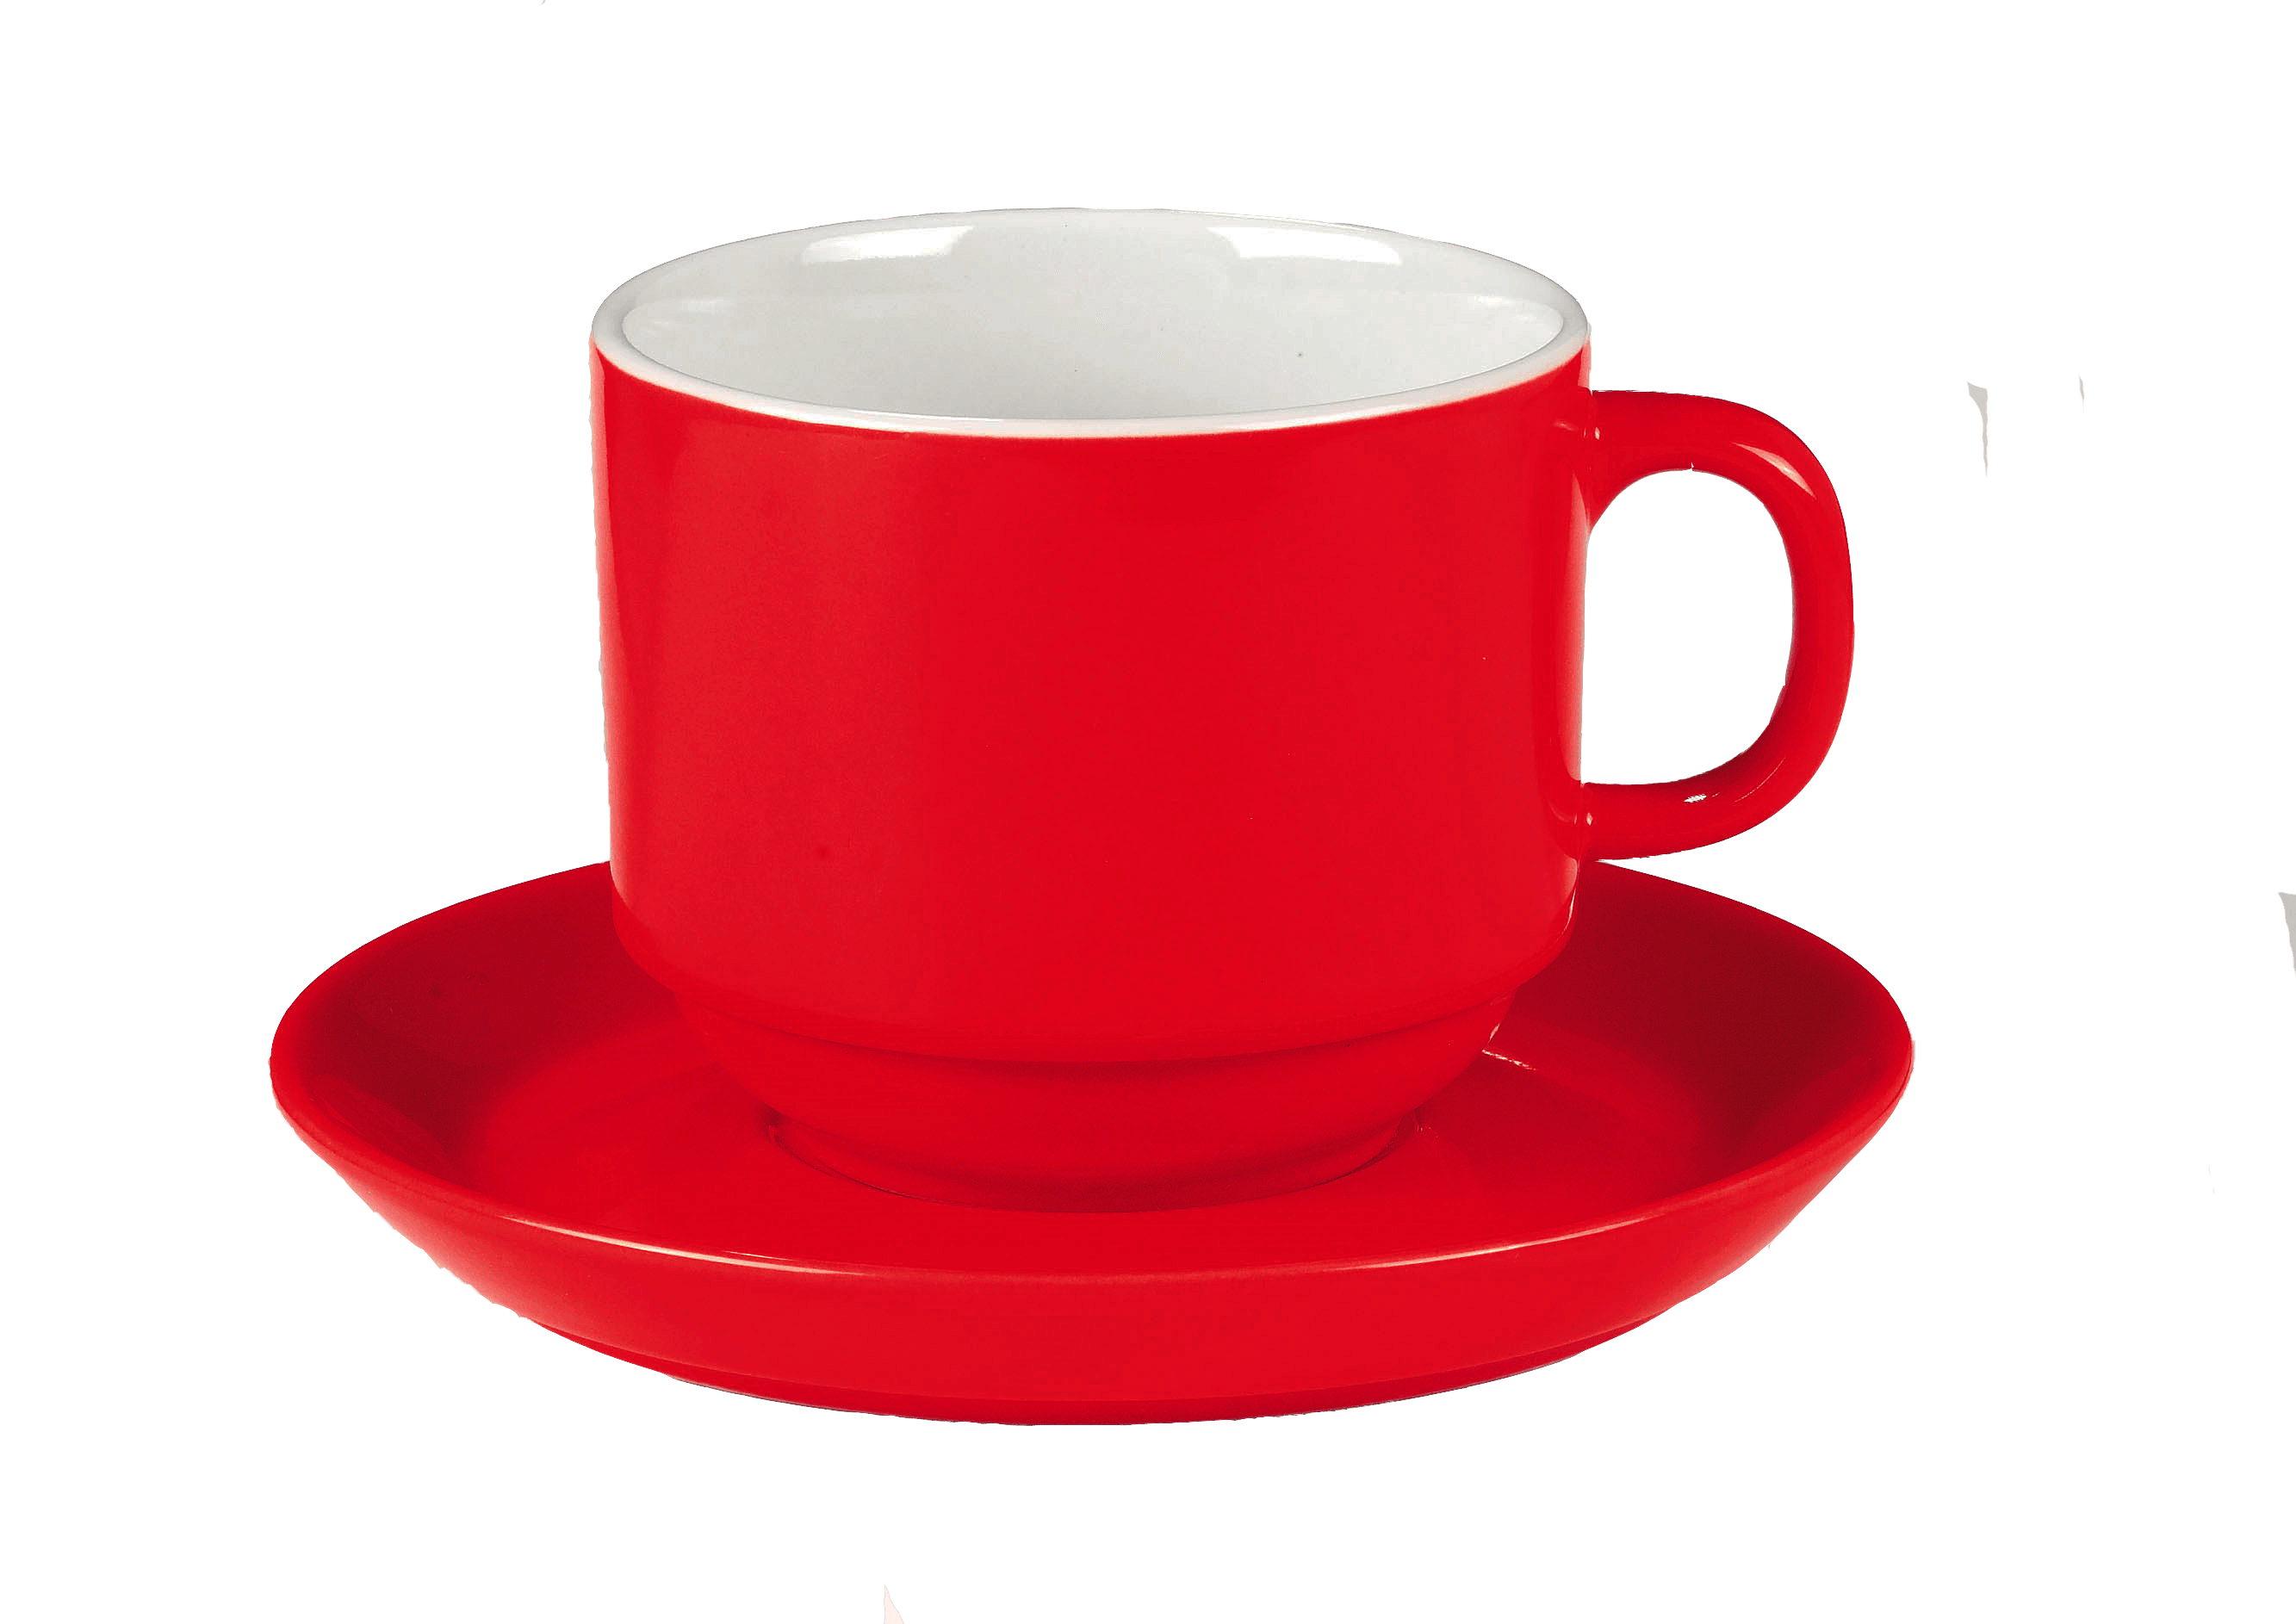 Red Cup Png Image PNG Image